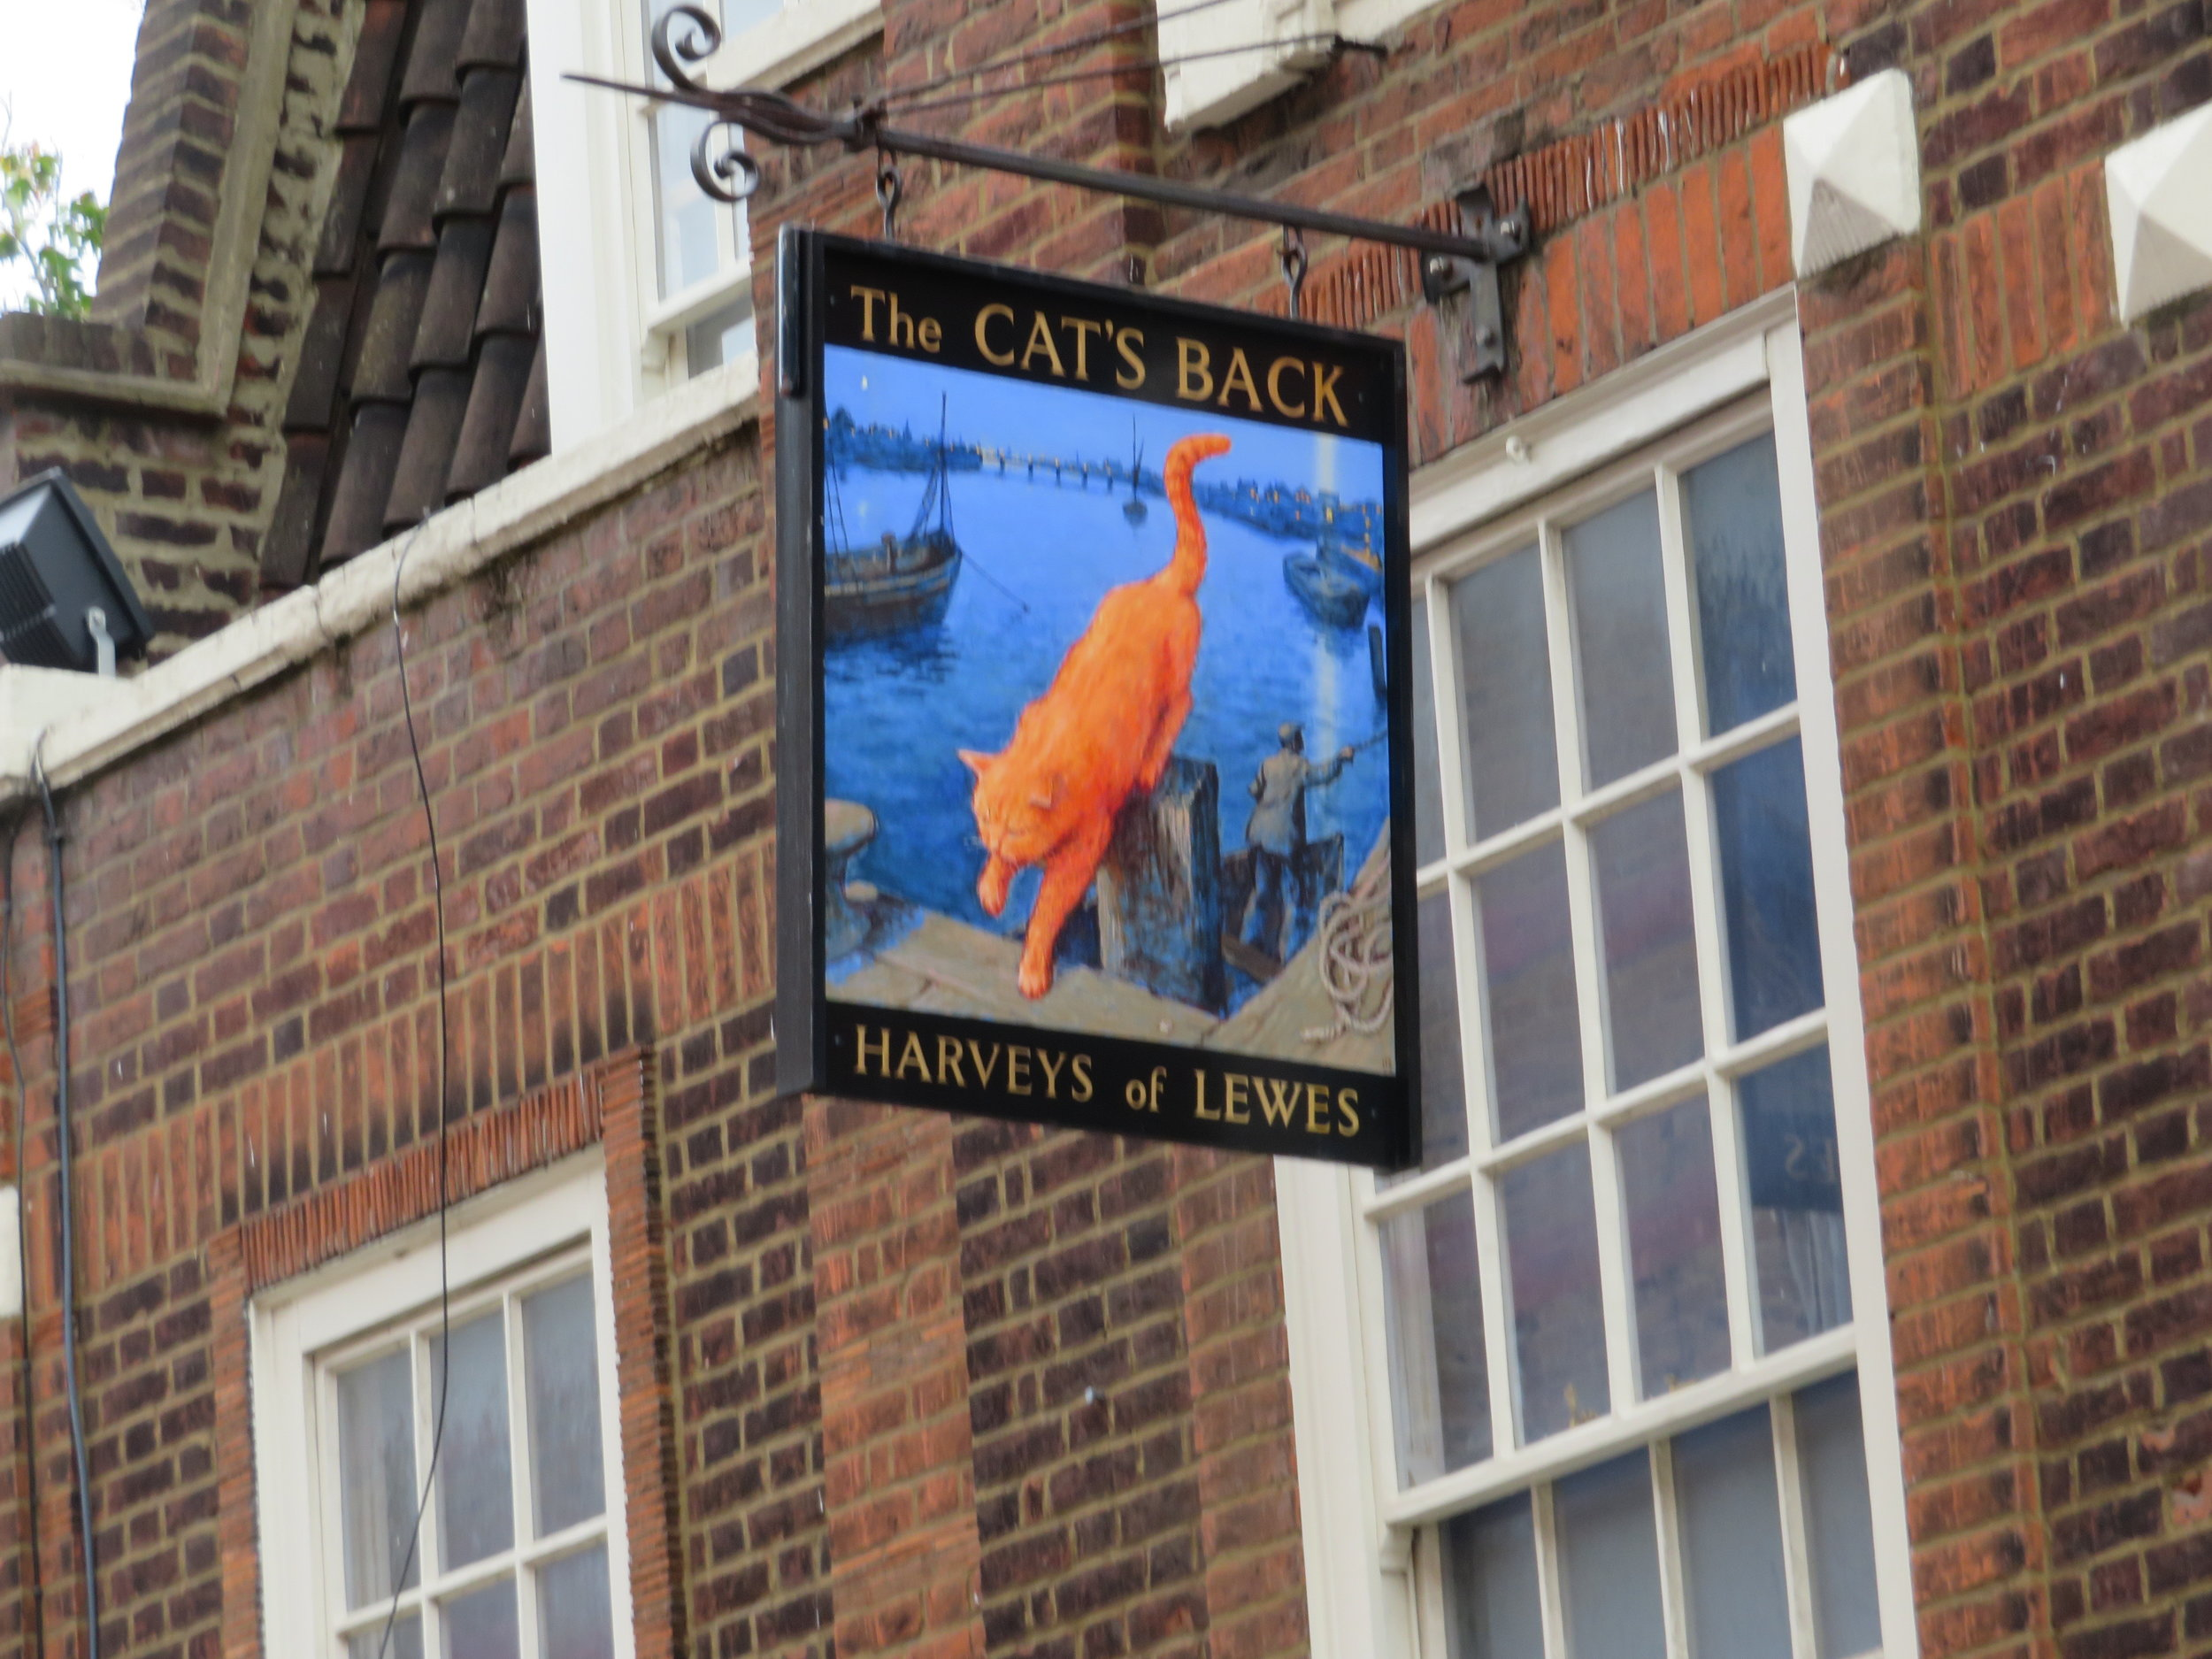 cats back pub.JPG